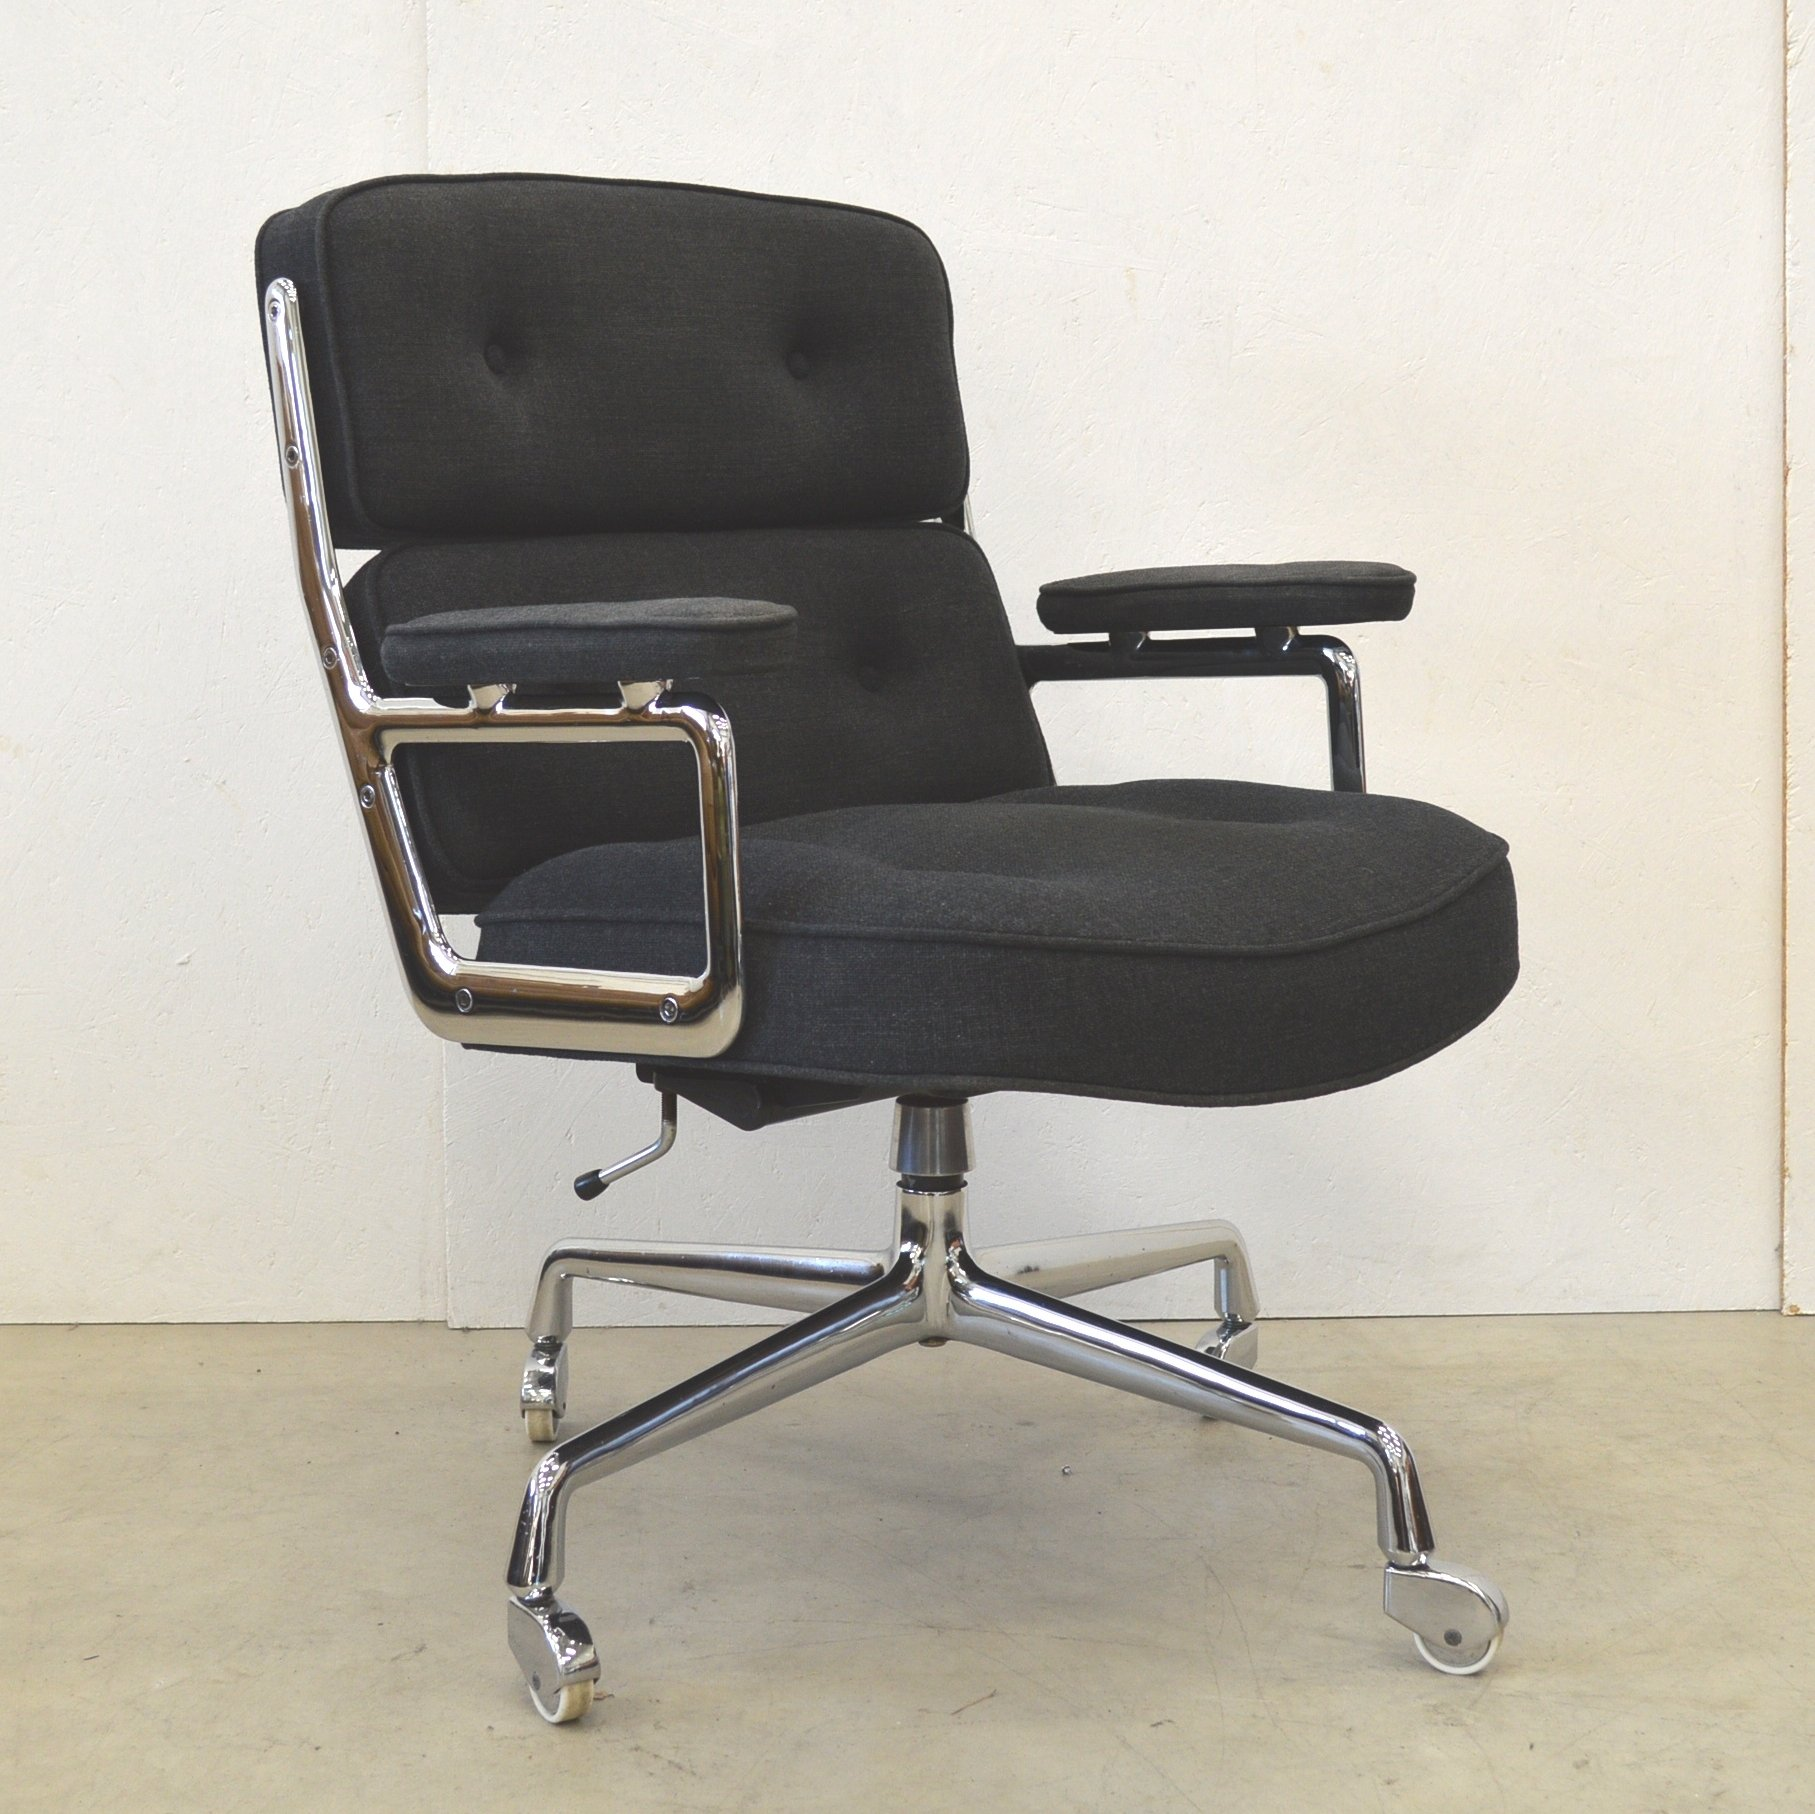 ES104 Lobby fice Chair from the seventies by Charles